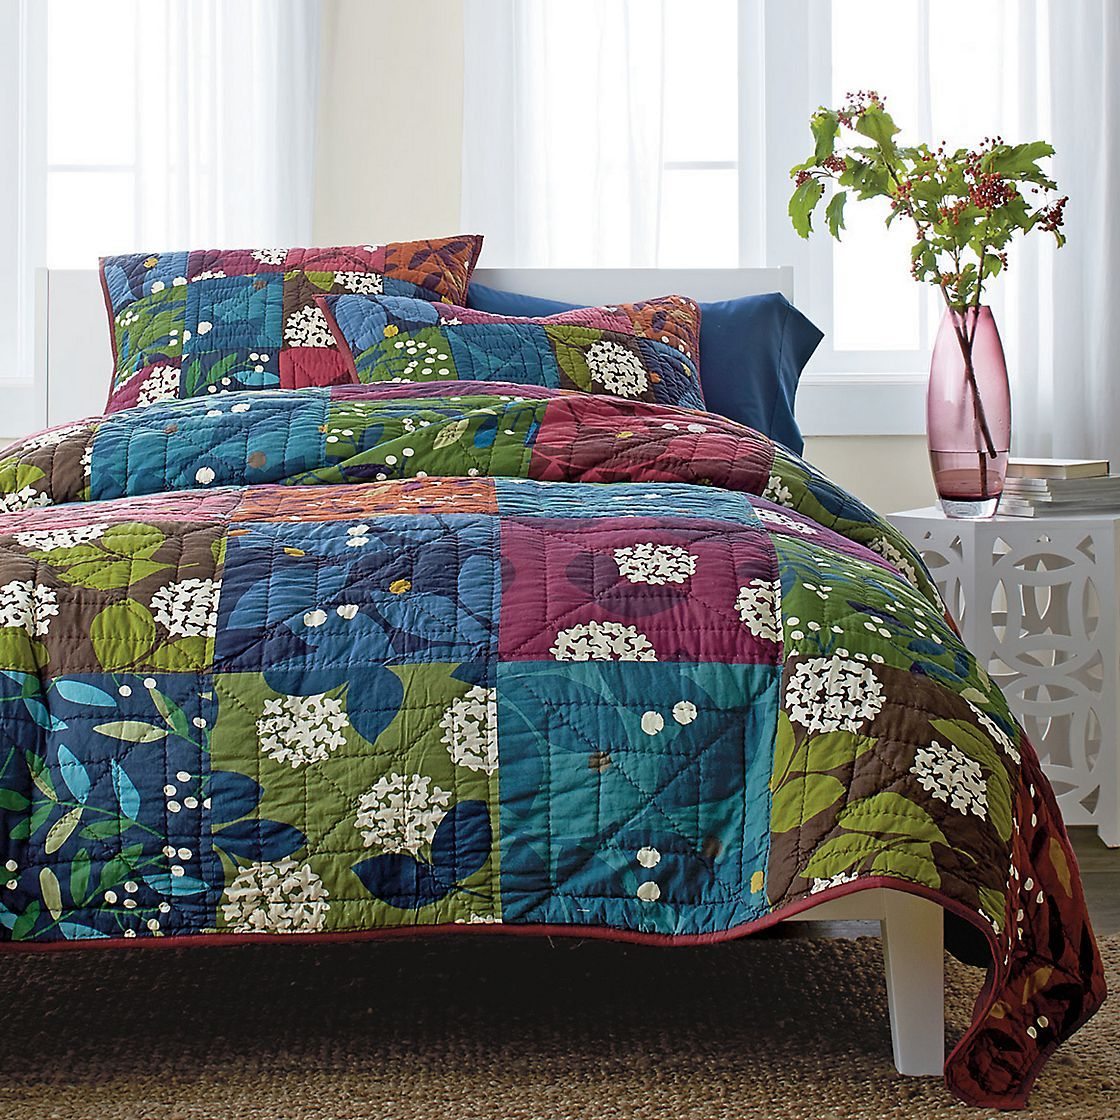 Bed sheets designs patchwork - Jane Patchwork Quilt The Company Store